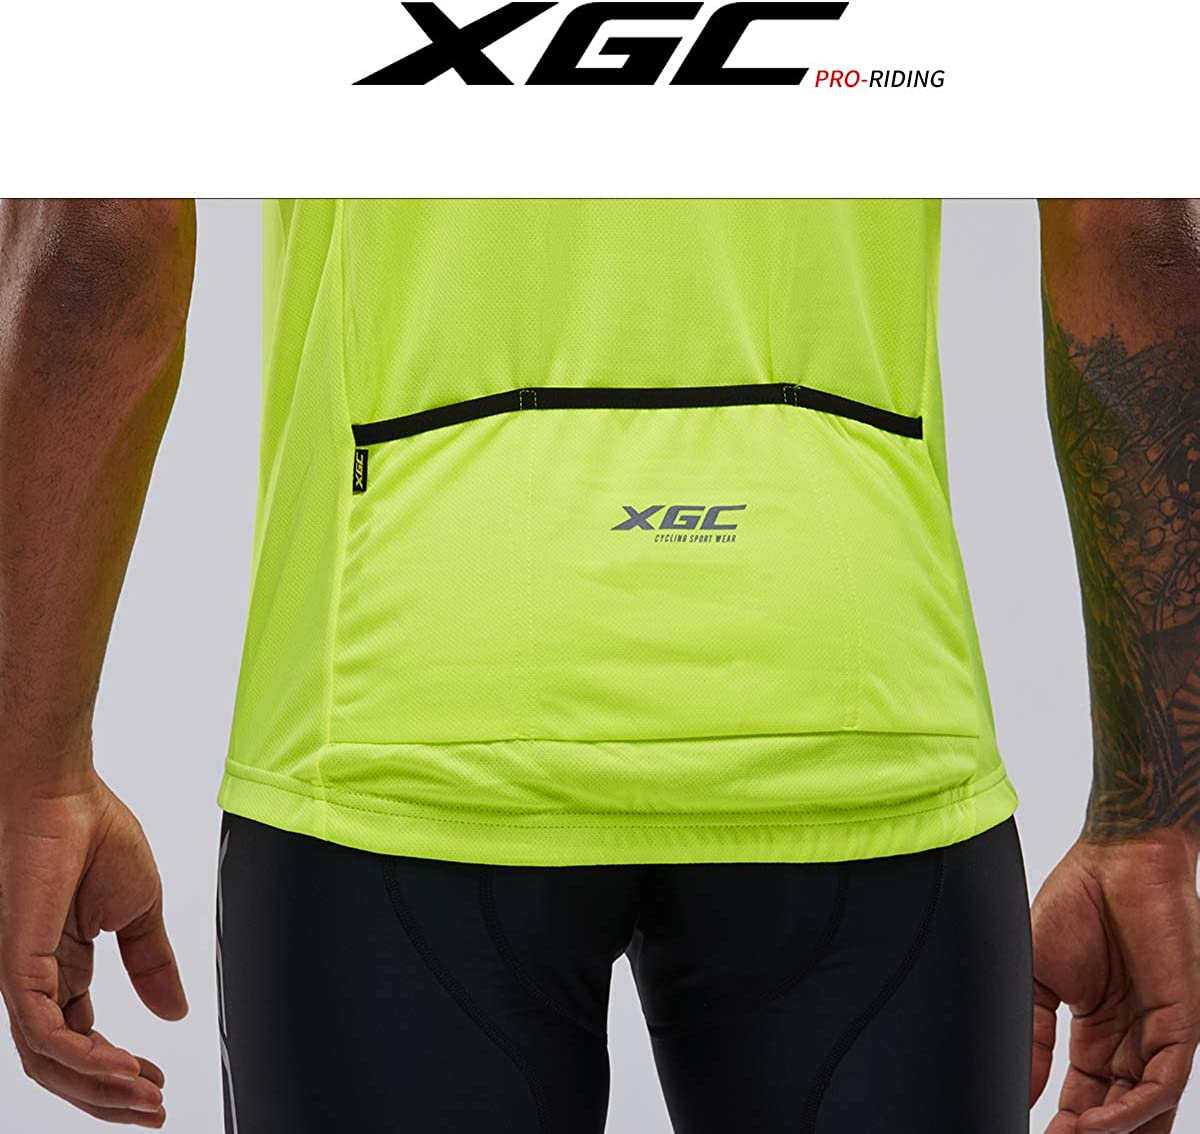 Mens Short//Long Sleeve Cycling Jersey Bike Jerseys Cycle Biking Shirt with Quick Dry Breathable Fabric